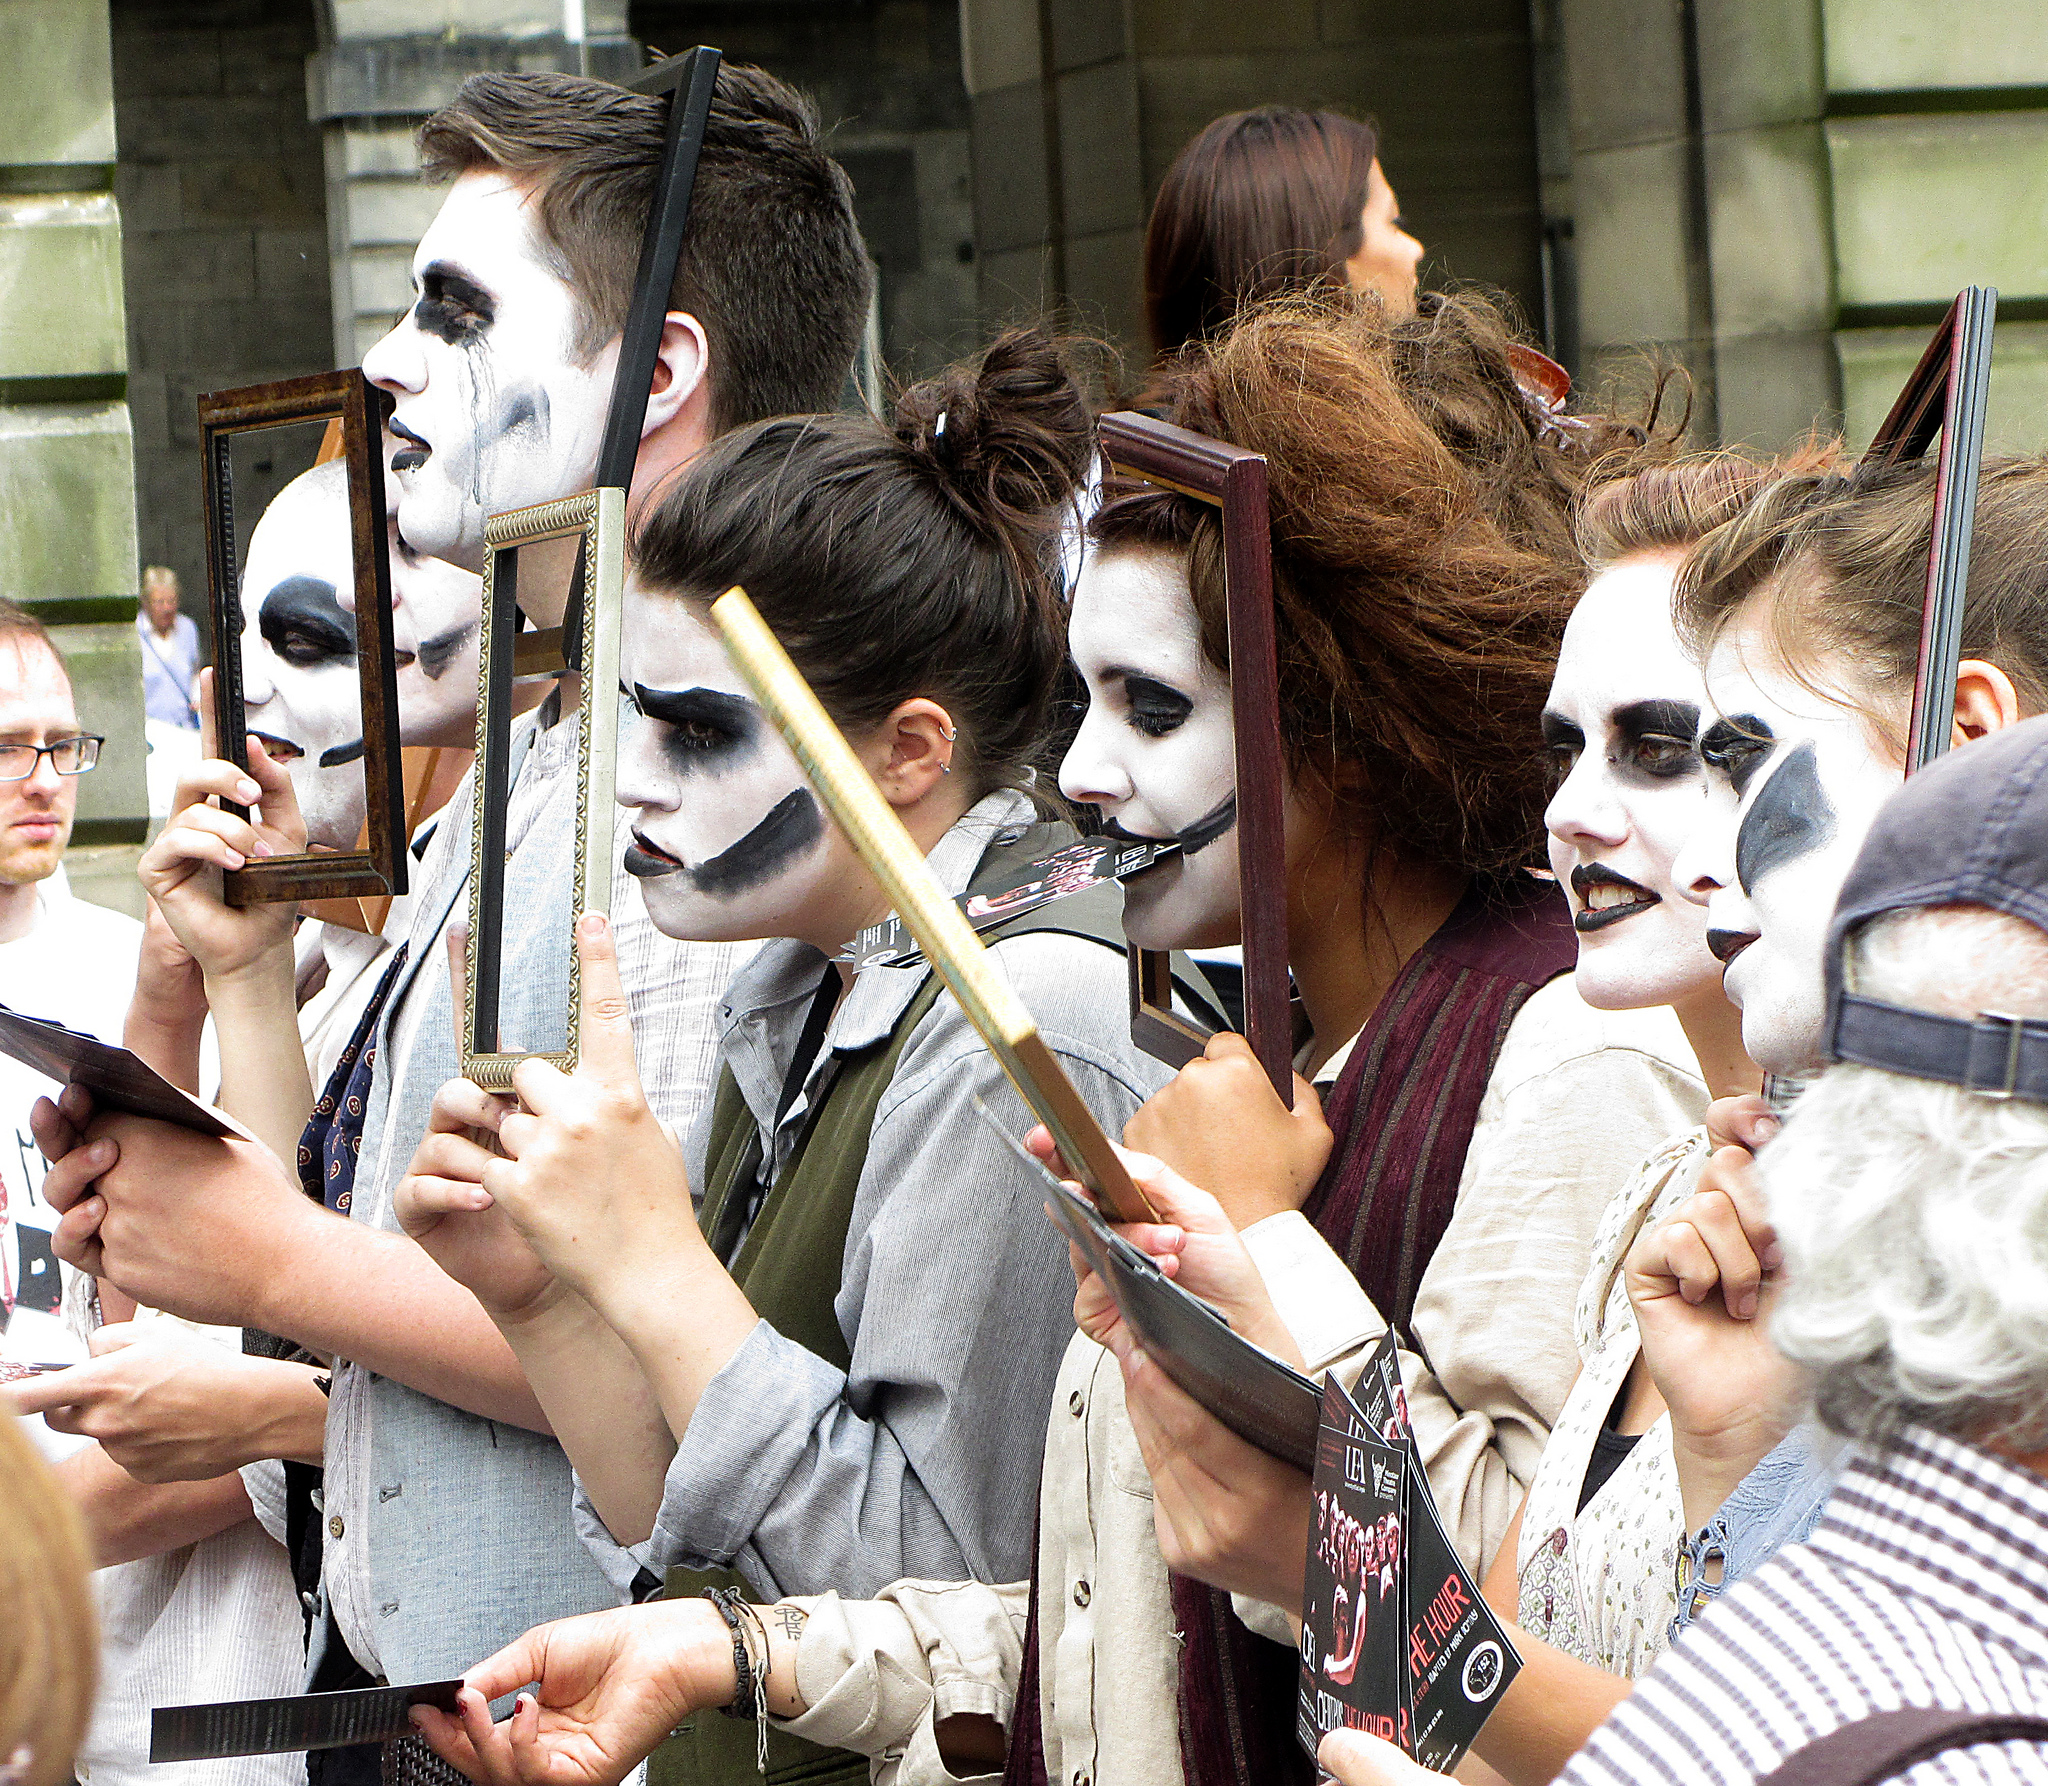 """Edinburgh Fringe Performers"" by Bob the Lomond via Flickr Creative Commons"